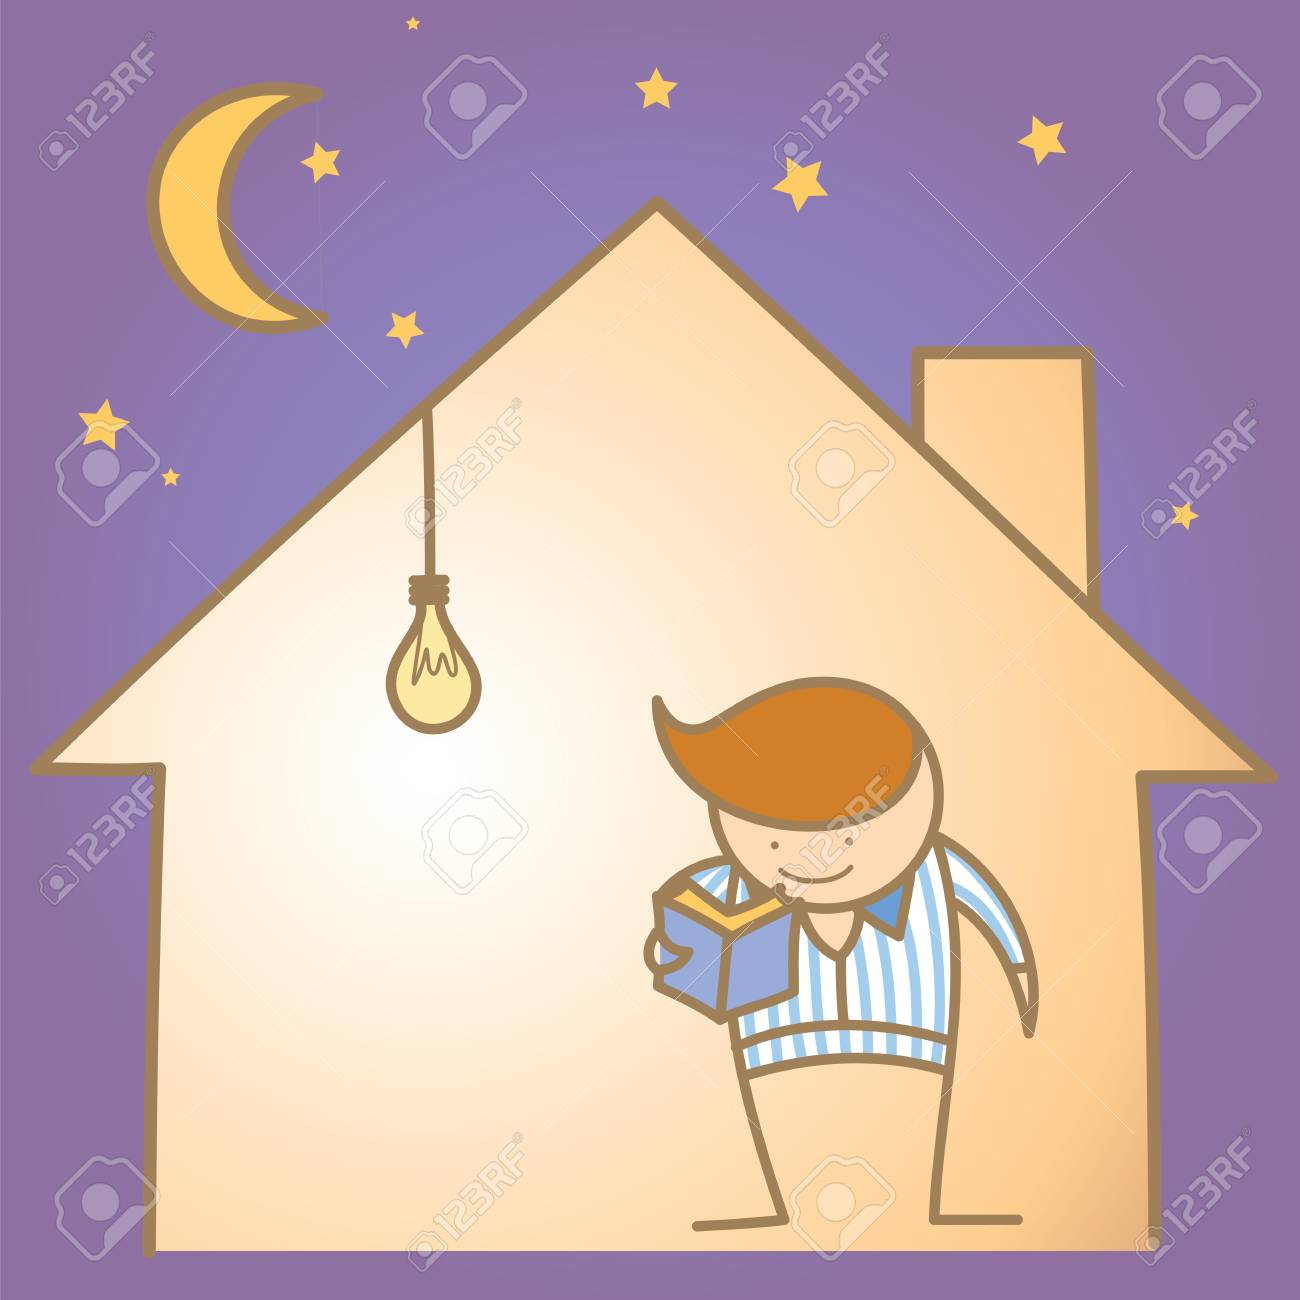 cartoon character of man in the warm and light house Stock Photo - 17389472